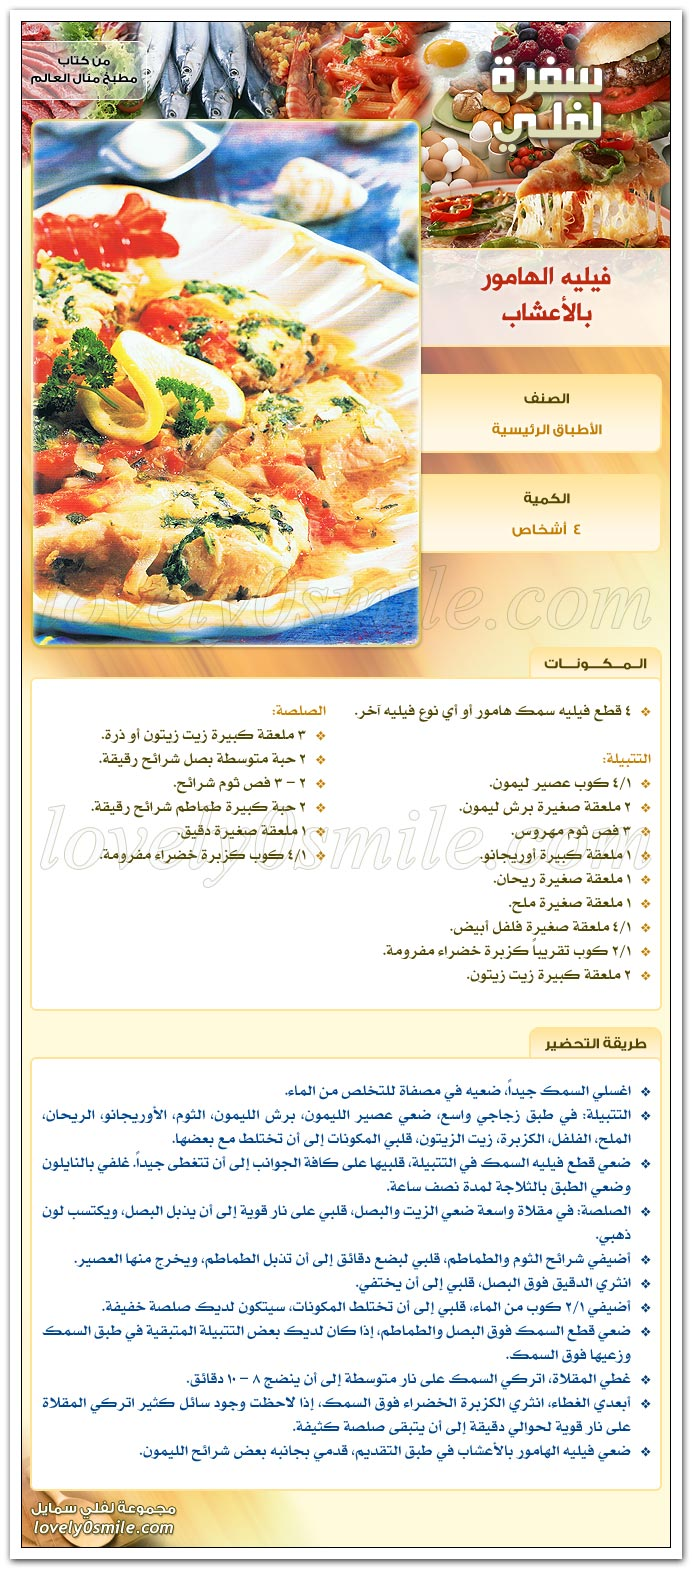 http://www.qassimy.com/up/users/qassimy/manal_alalem_cookbook_recipes_cooking_12.jpg